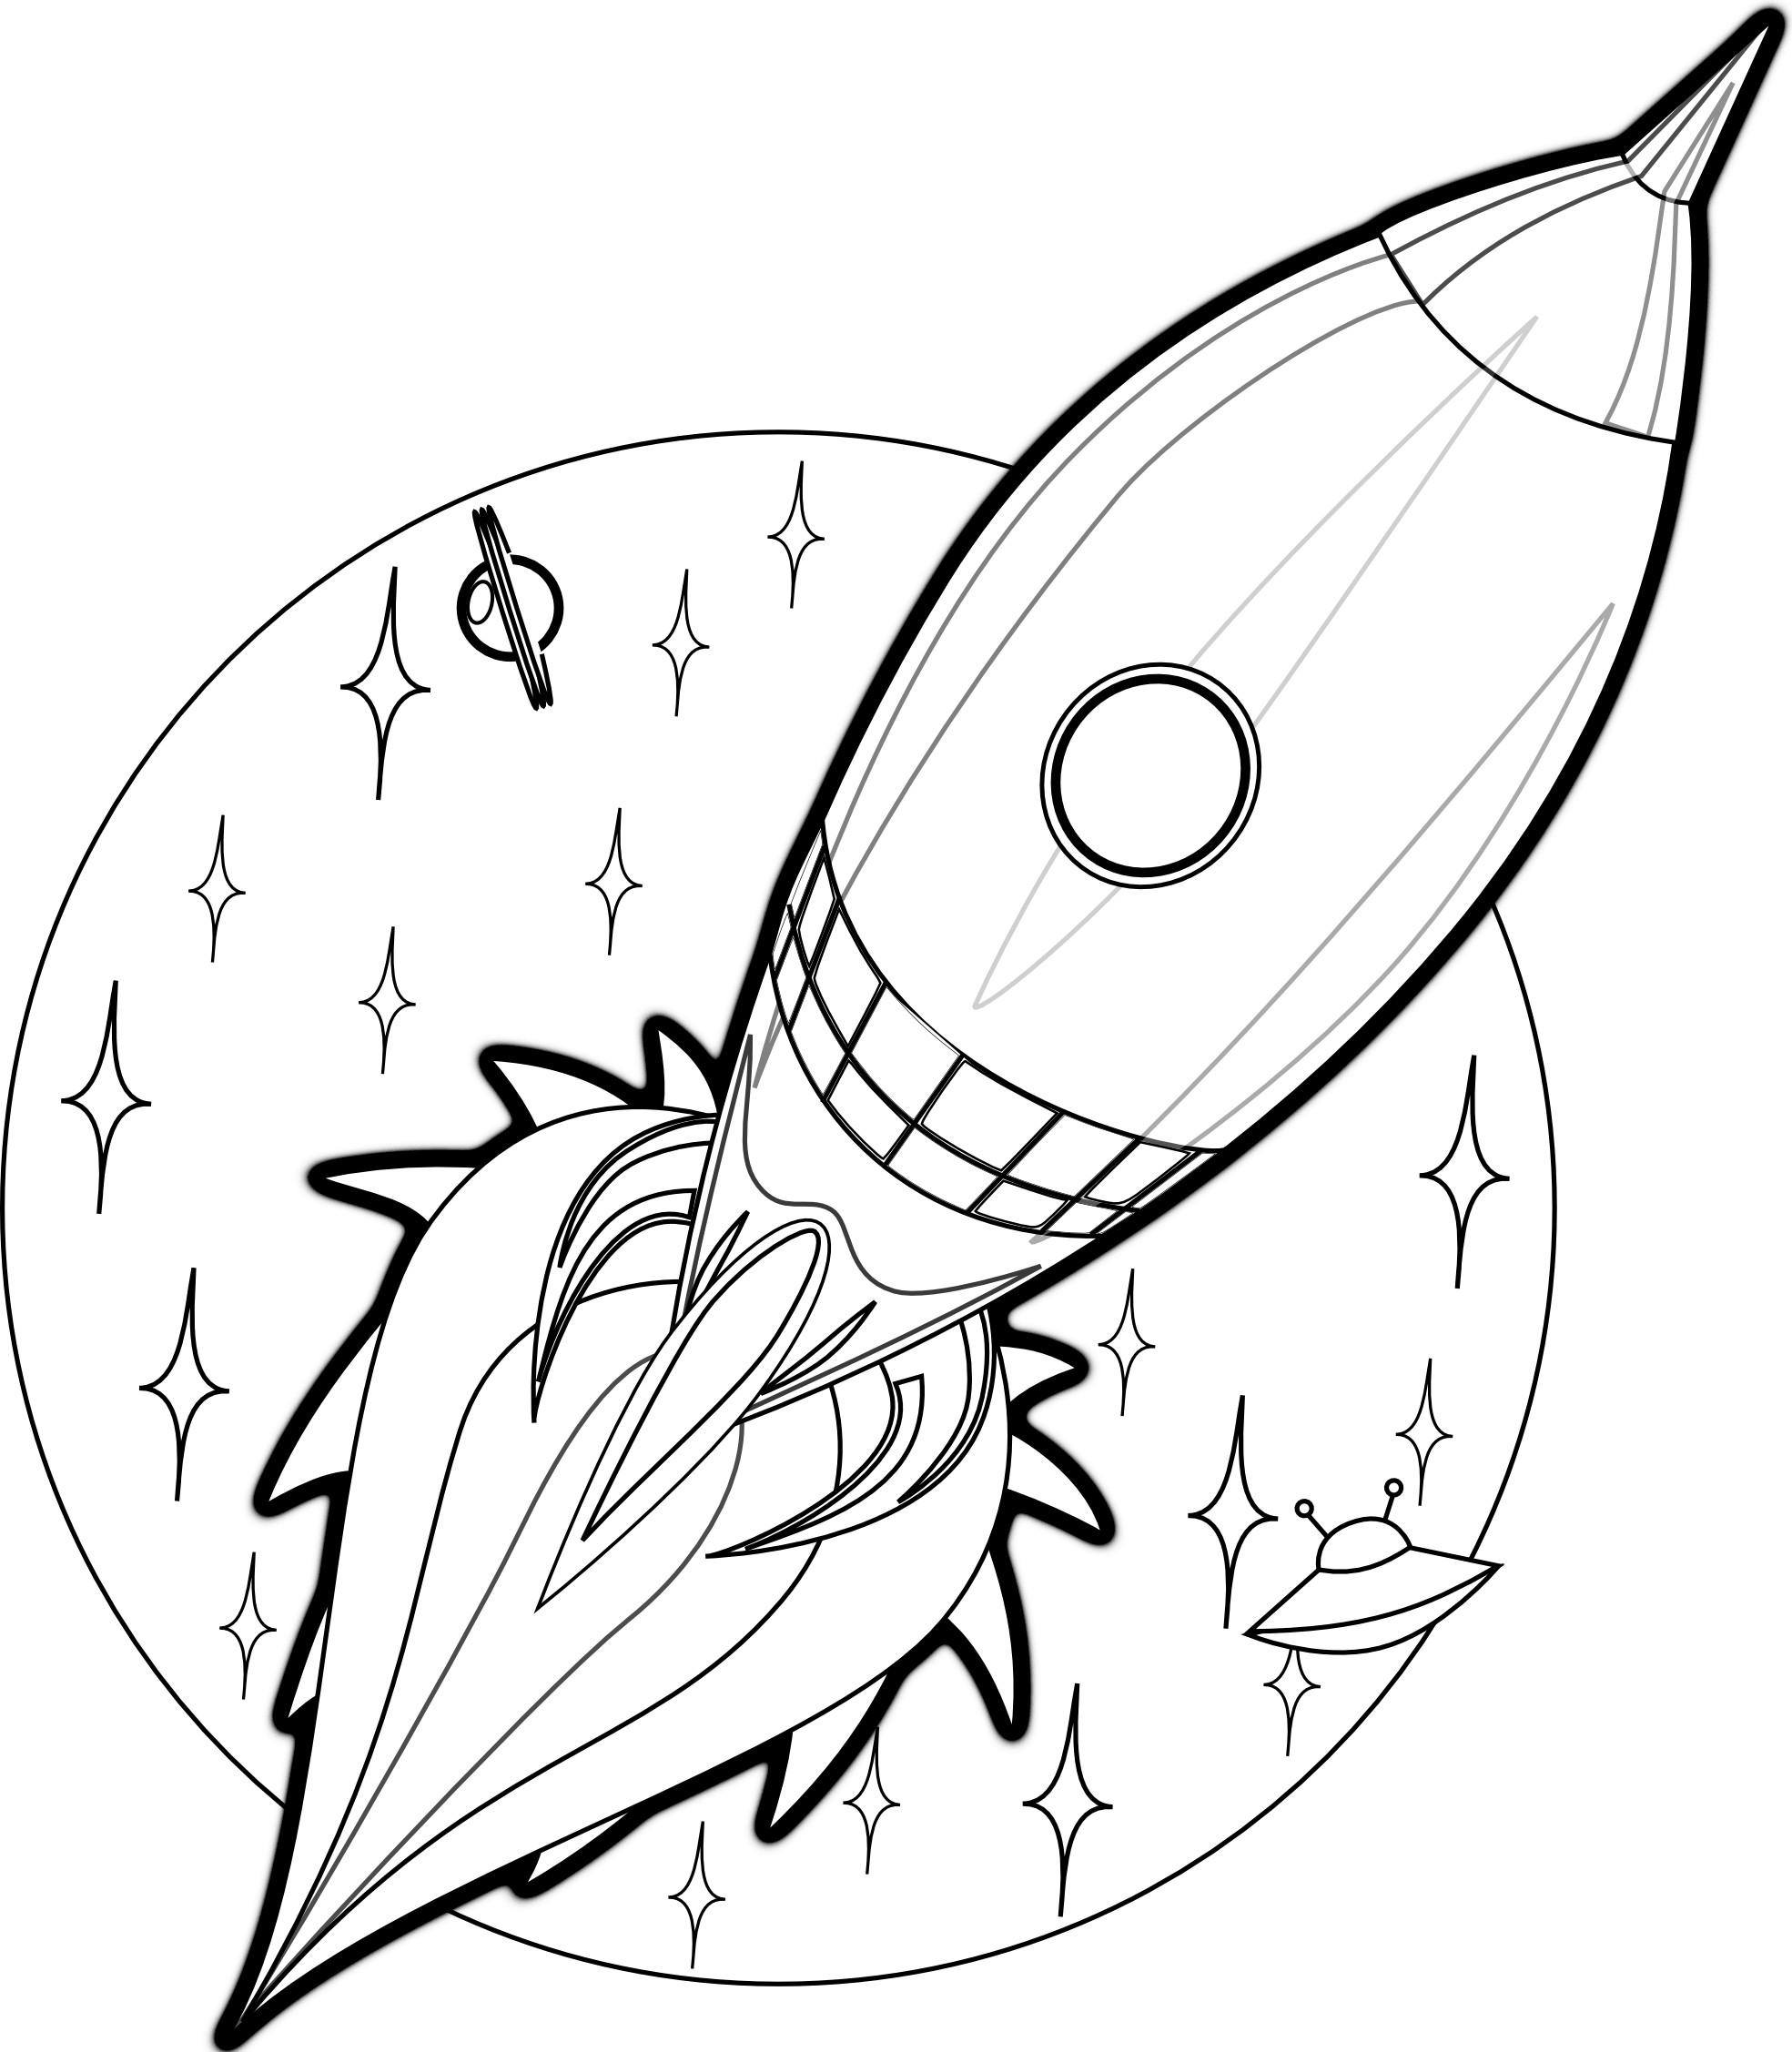 Rocket Picture to Color